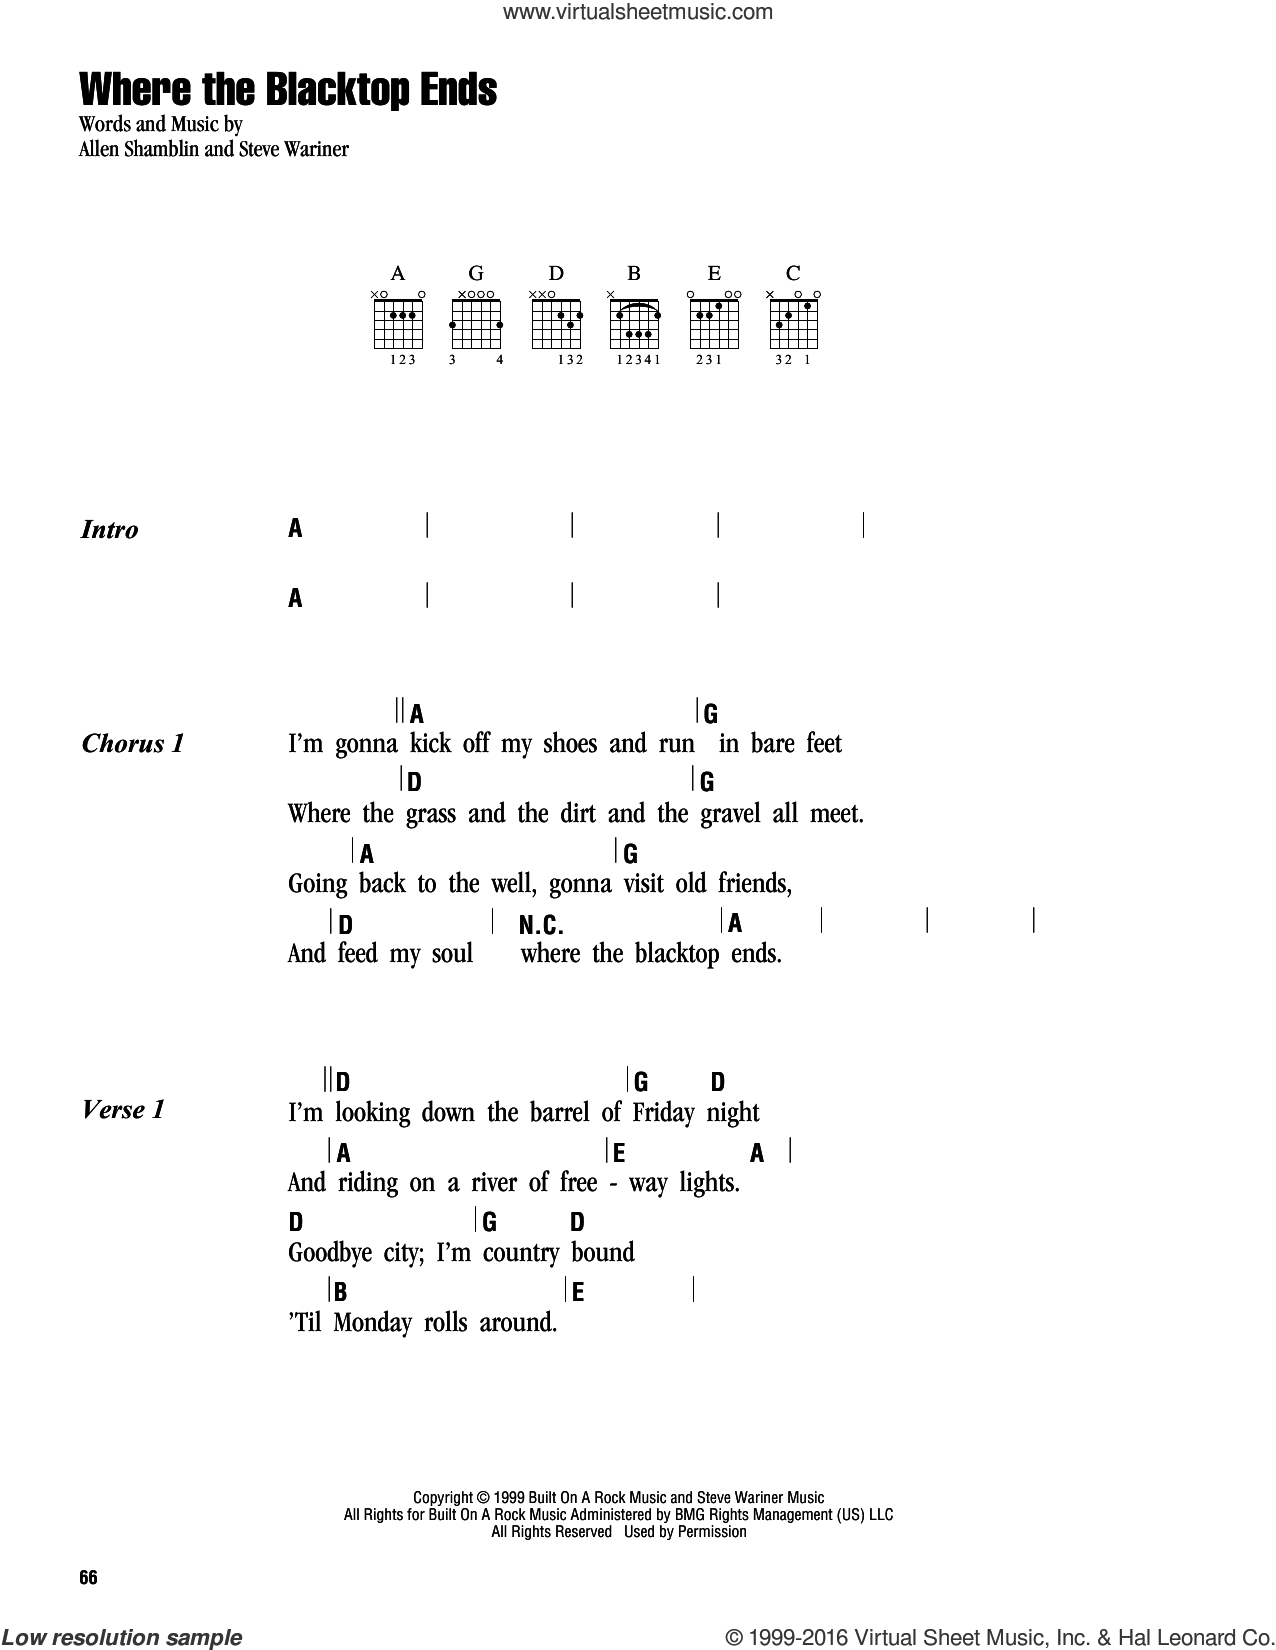 Where The Blacktop Ends sheet music for guitar (chords) by Steve Wariner, Keith Urban and Allen Shamblin. Score Image Preview.